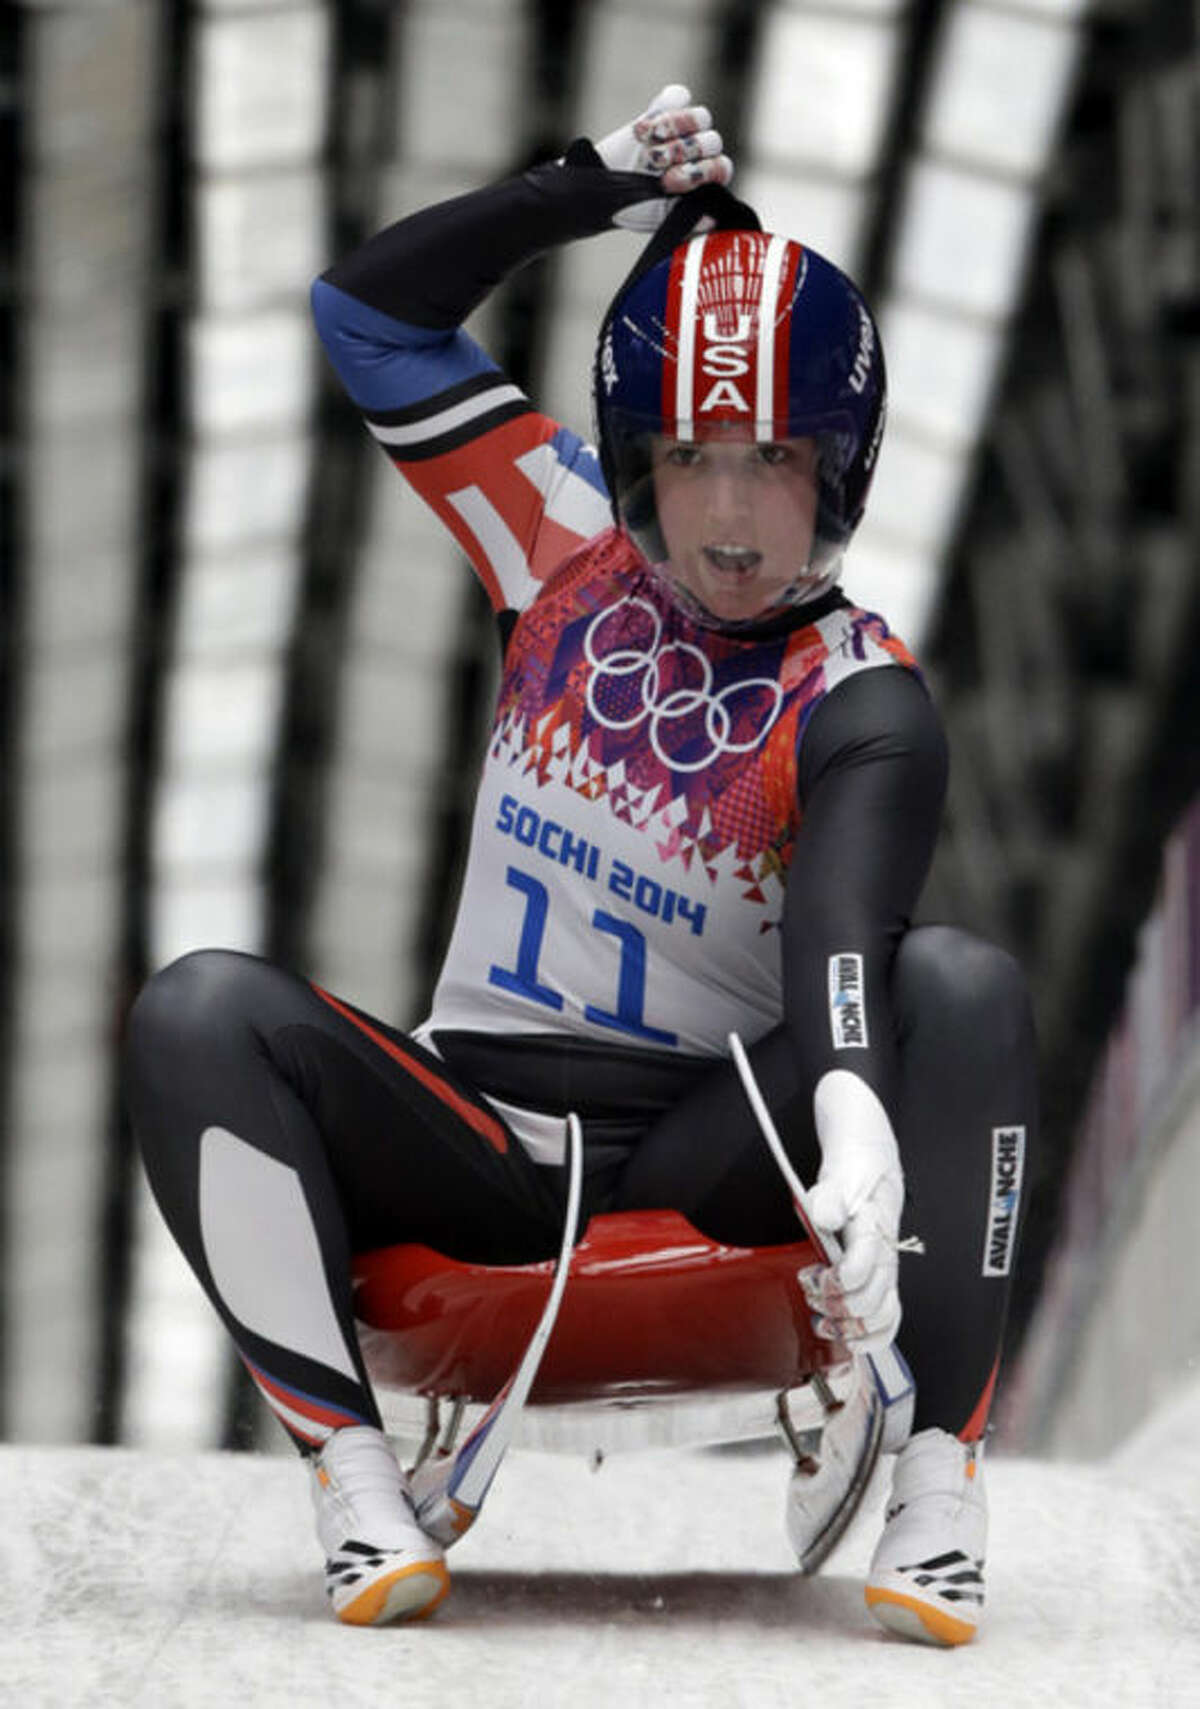 Erin Hamlin of the United States brakes in the finish area after finishing her first run during the women's singles luge competition at the 2014 Winter Olympics, Monday, Feb. 10, 2014, in Krasnaya Polyana, Russia. (AP Photo/Dita Alangkara)